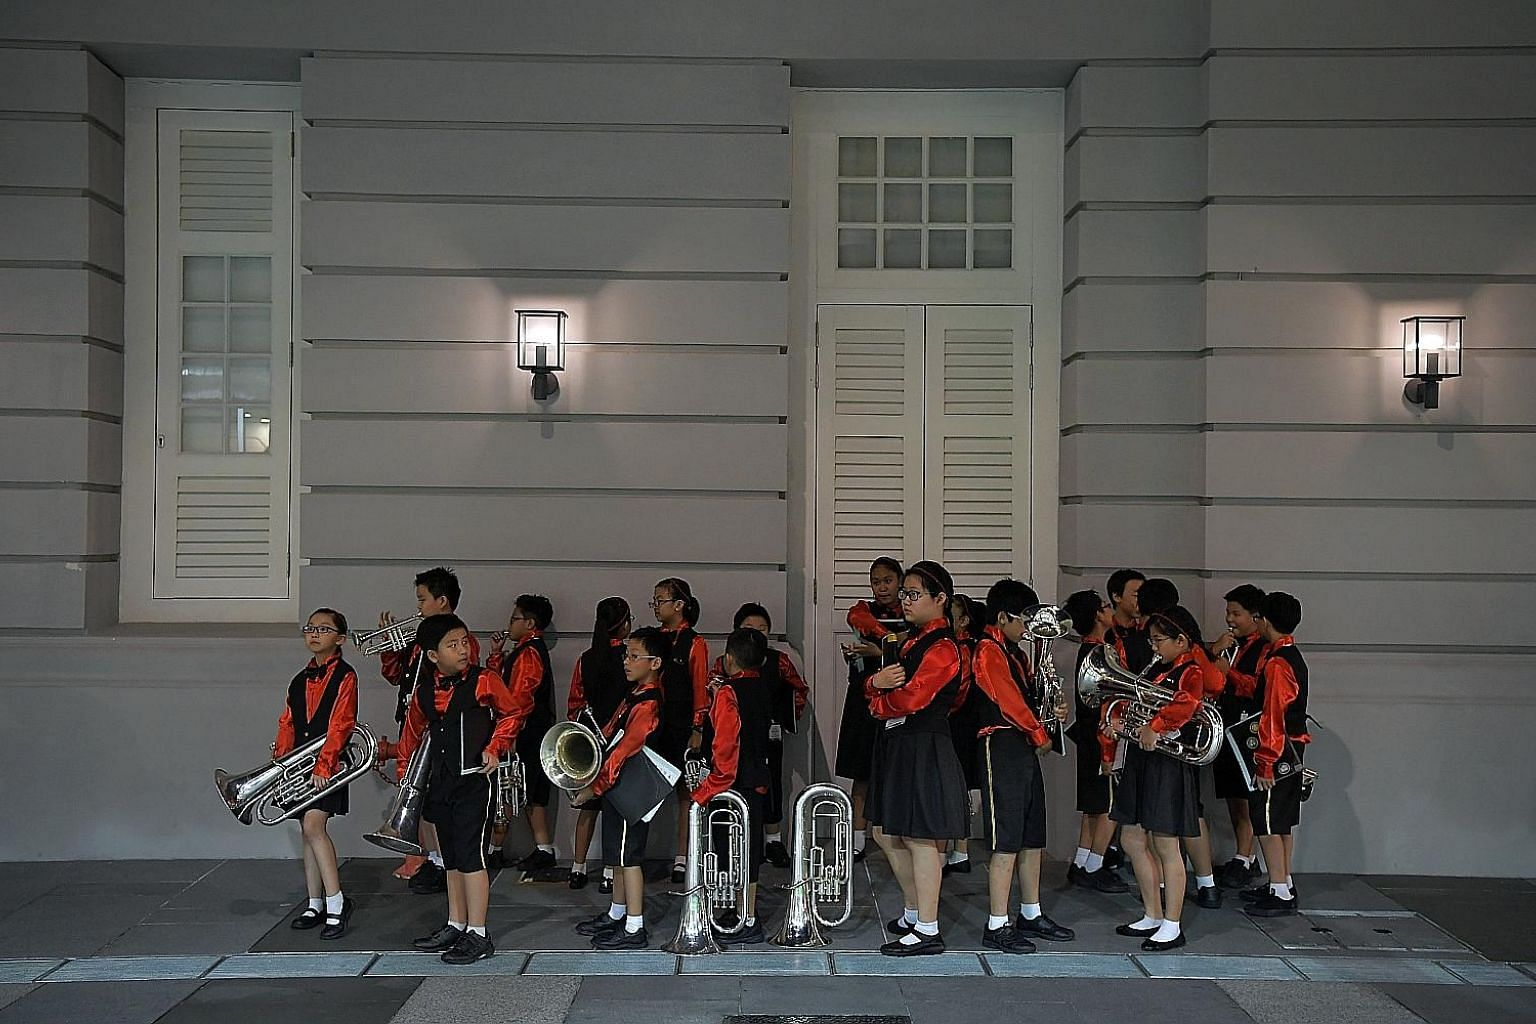 Those in the primary and lower secondary levels in Singapore benefit from structured art and music curricula. One learning outcome in the music framework for these levels is for students to appreciate music and have an understanding of its role in di